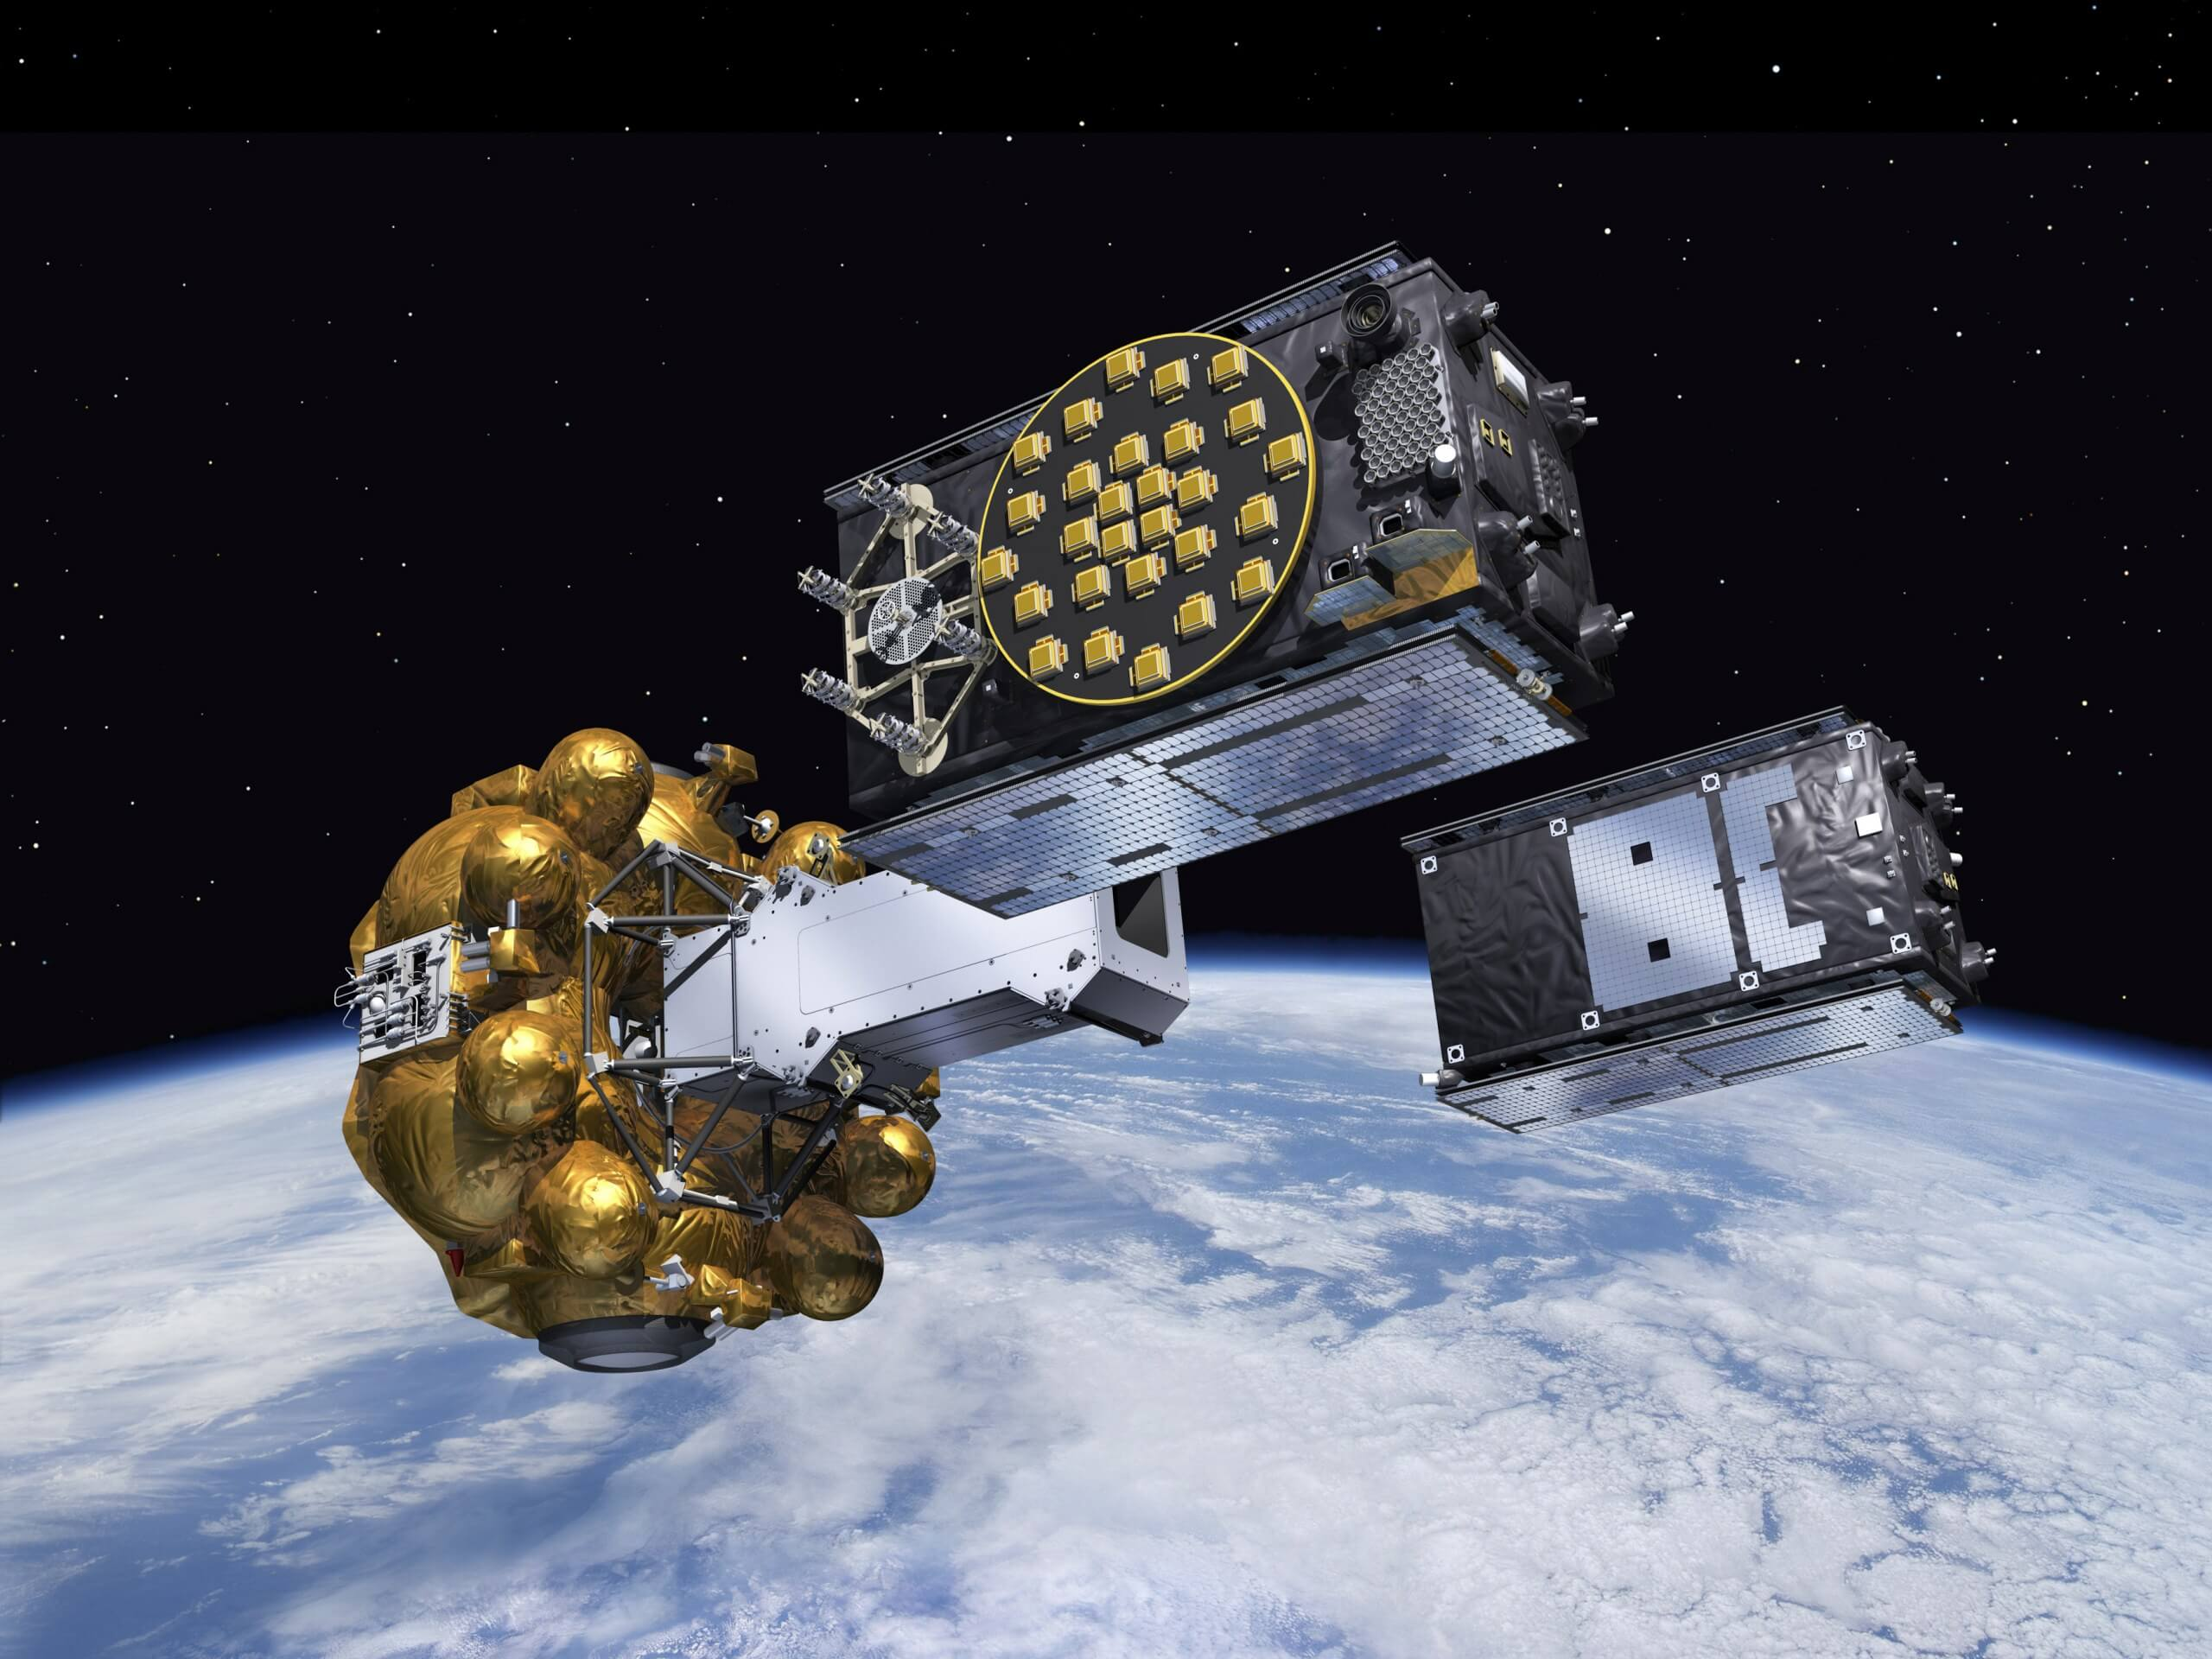 Europe's Galileo GPS Satellite System Experiencing Major Outage